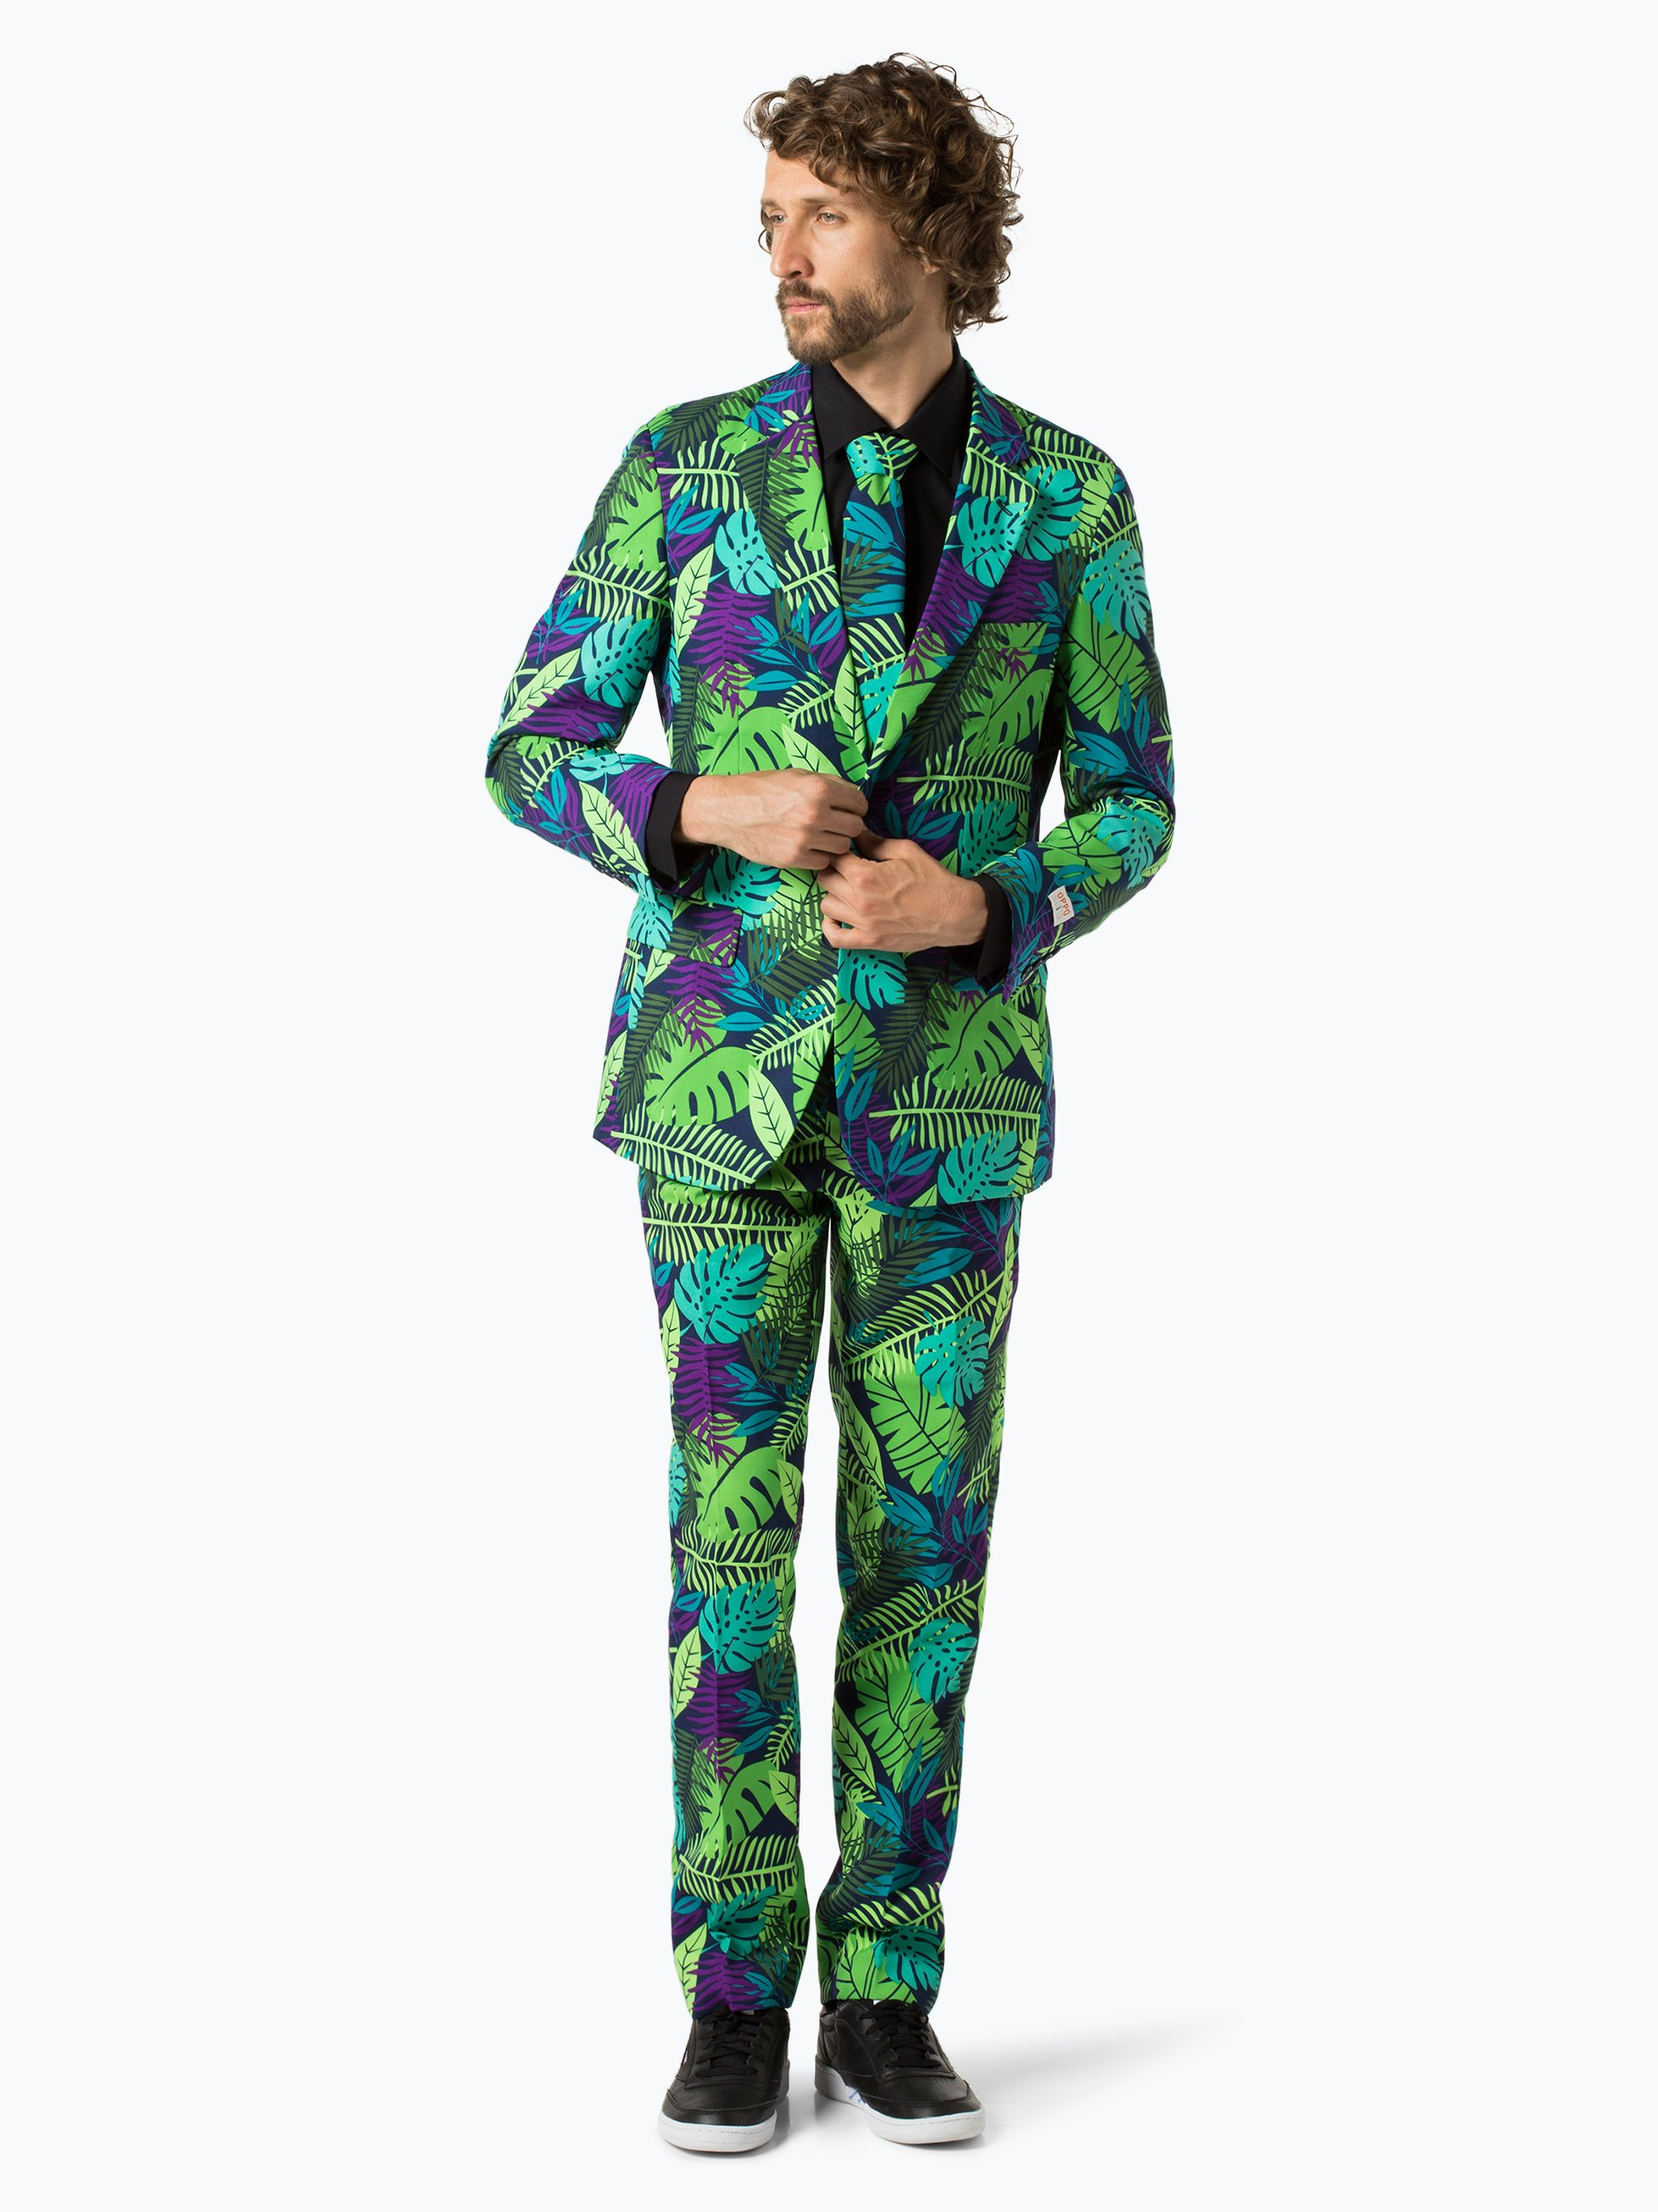 opposuits herren anzug mit krawatte gr n gemustert online. Black Bedroom Furniture Sets. Home Design Ideas